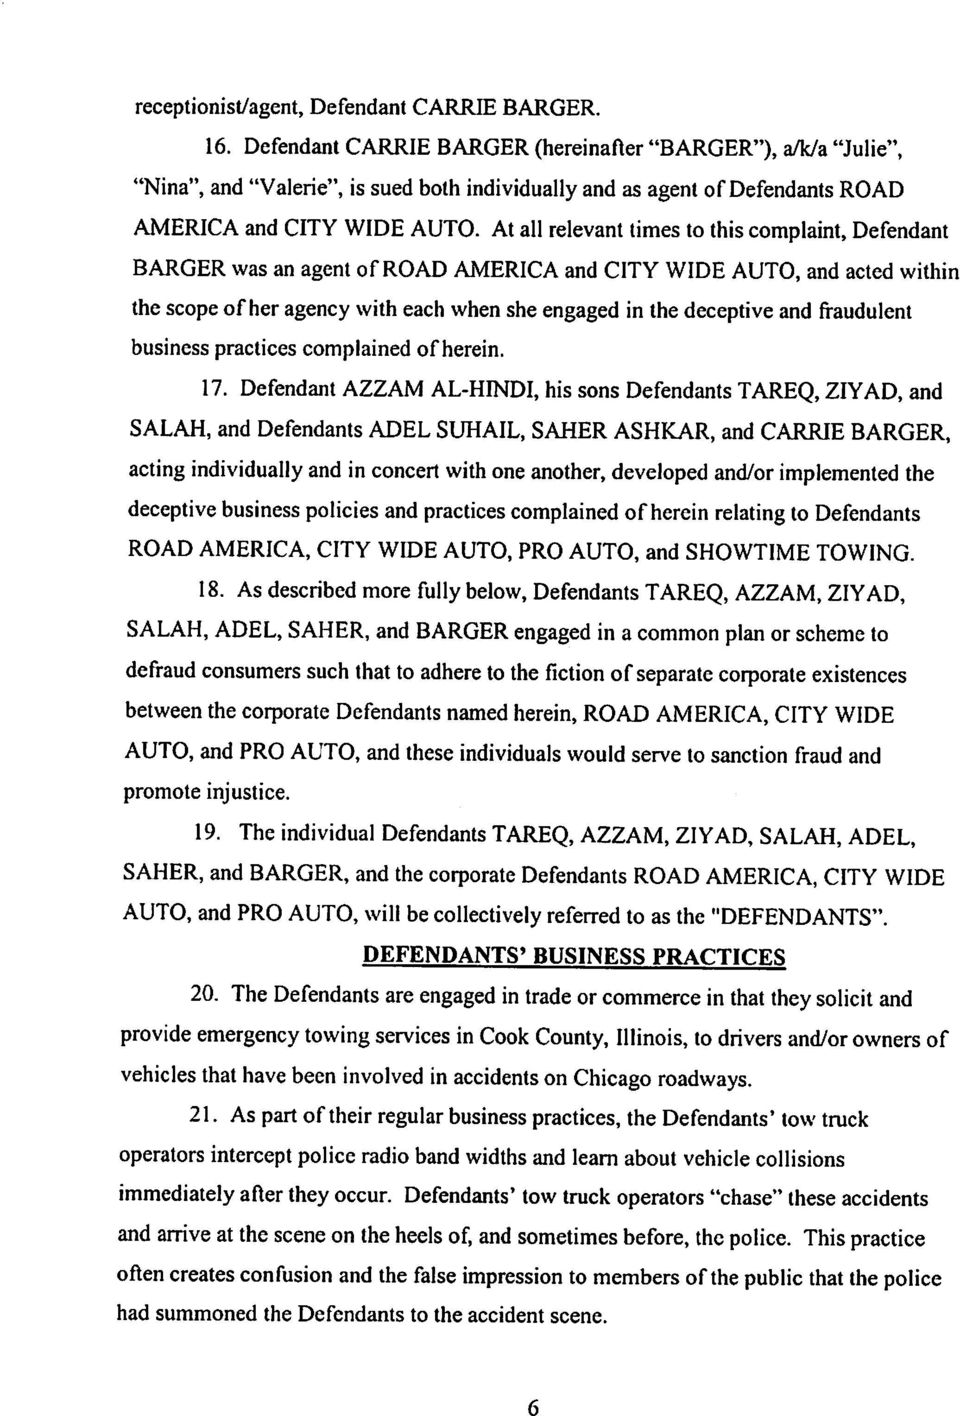 At all relevant times to this complaint, Defendant BARGER was an agent of ROAD AMERICA and CITY WIDE AUTO, and acted within the scope of her agency with each when she engaged in the deceptive and